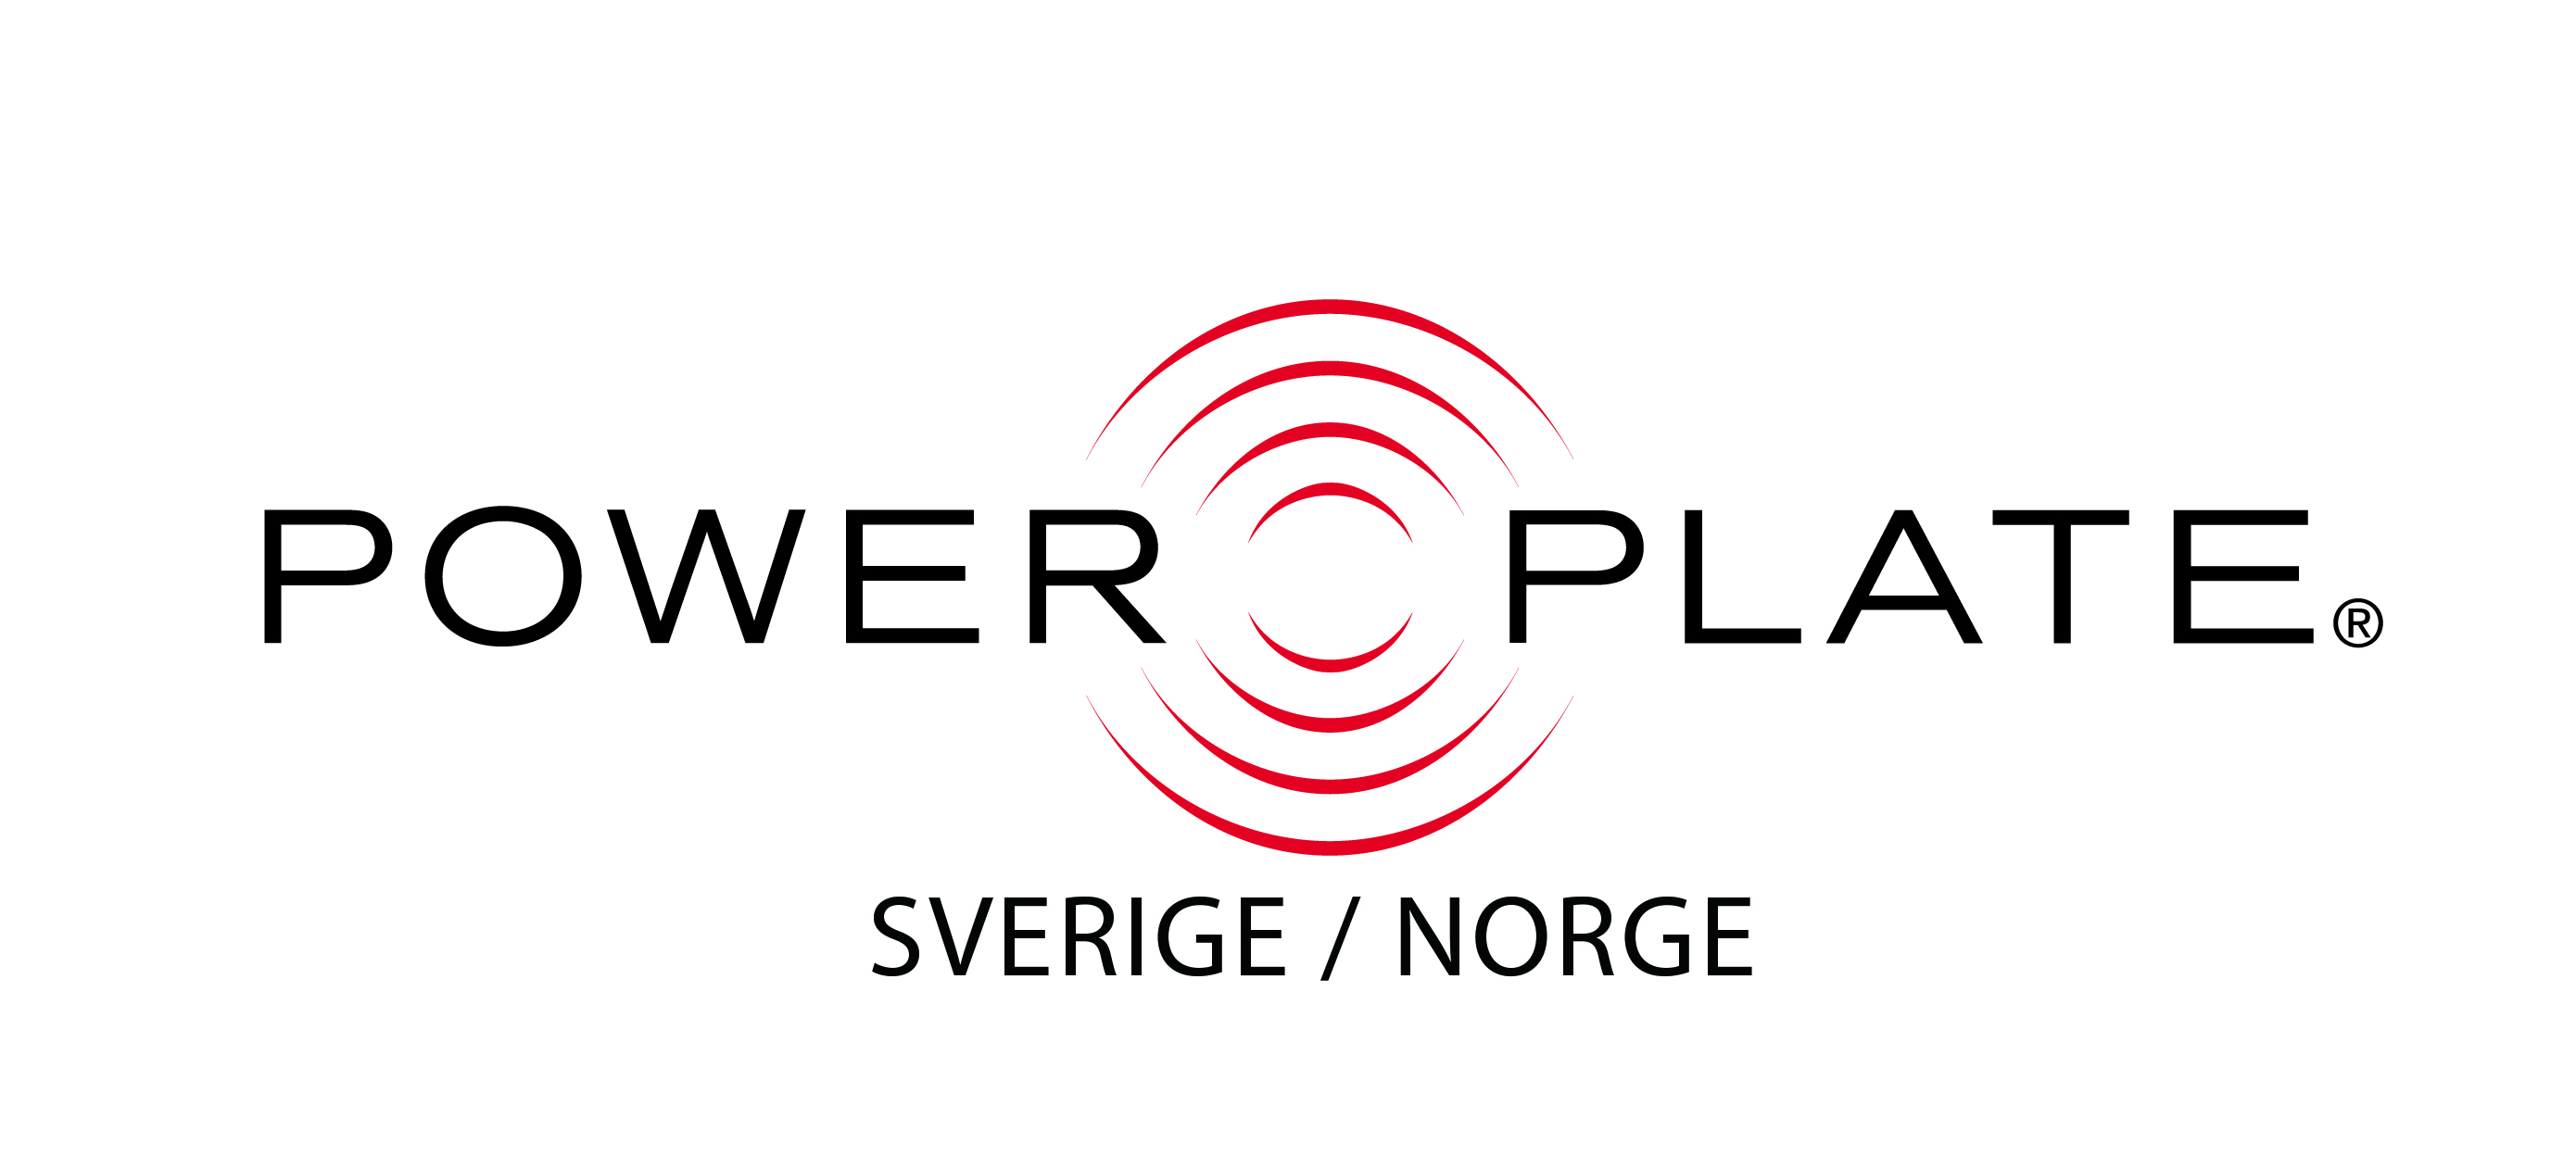 Powerplatesverige